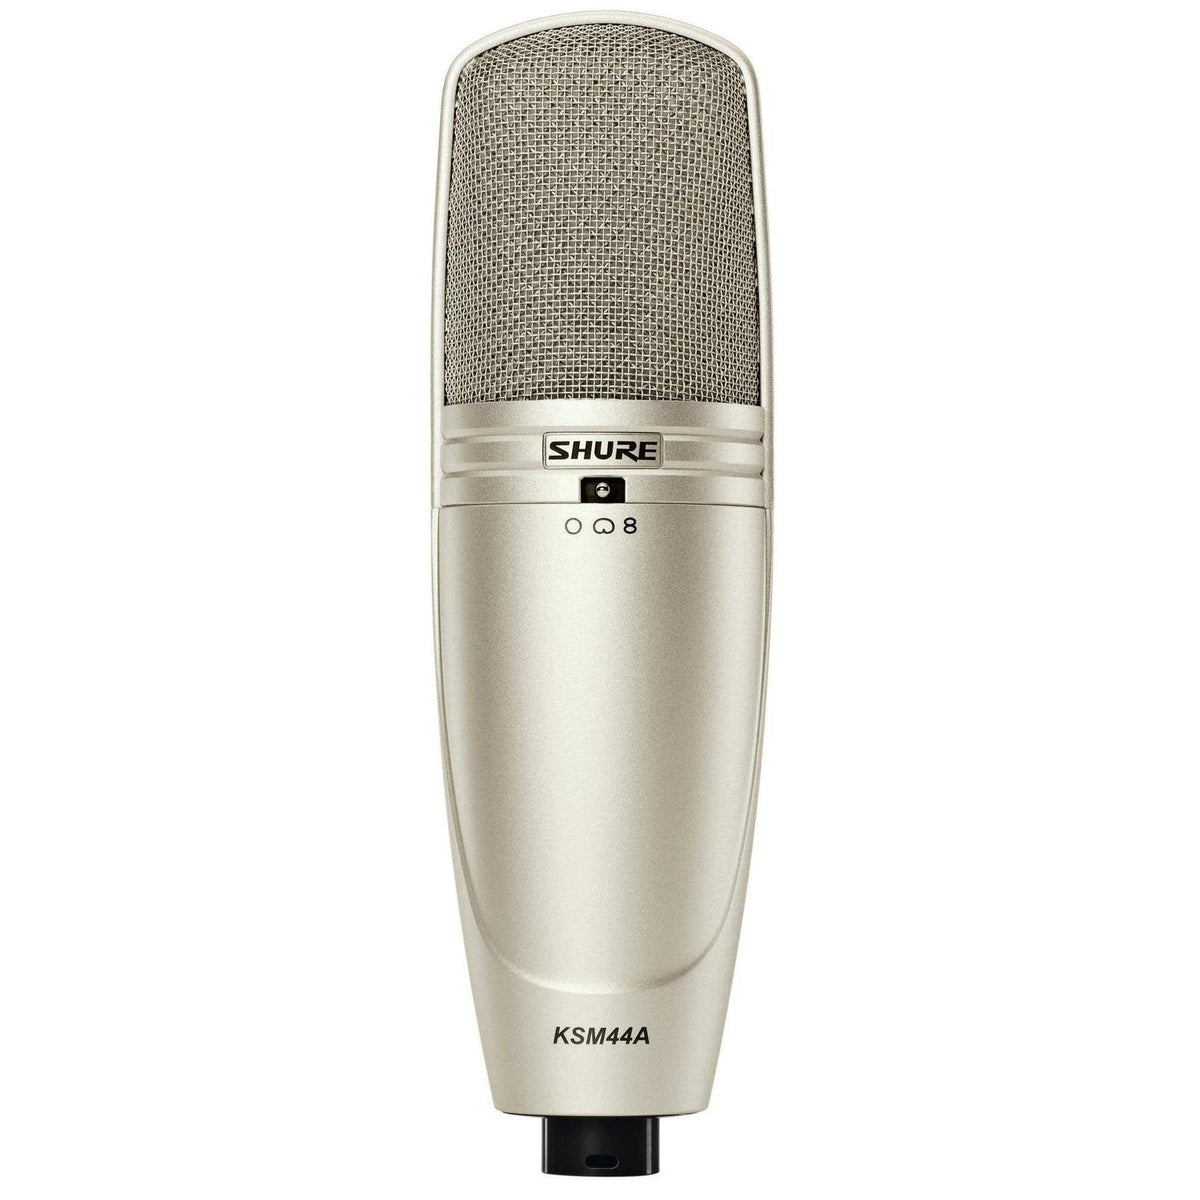 Shure KSM44A/SL Large-diaphragm Condenser Microphone - Silver